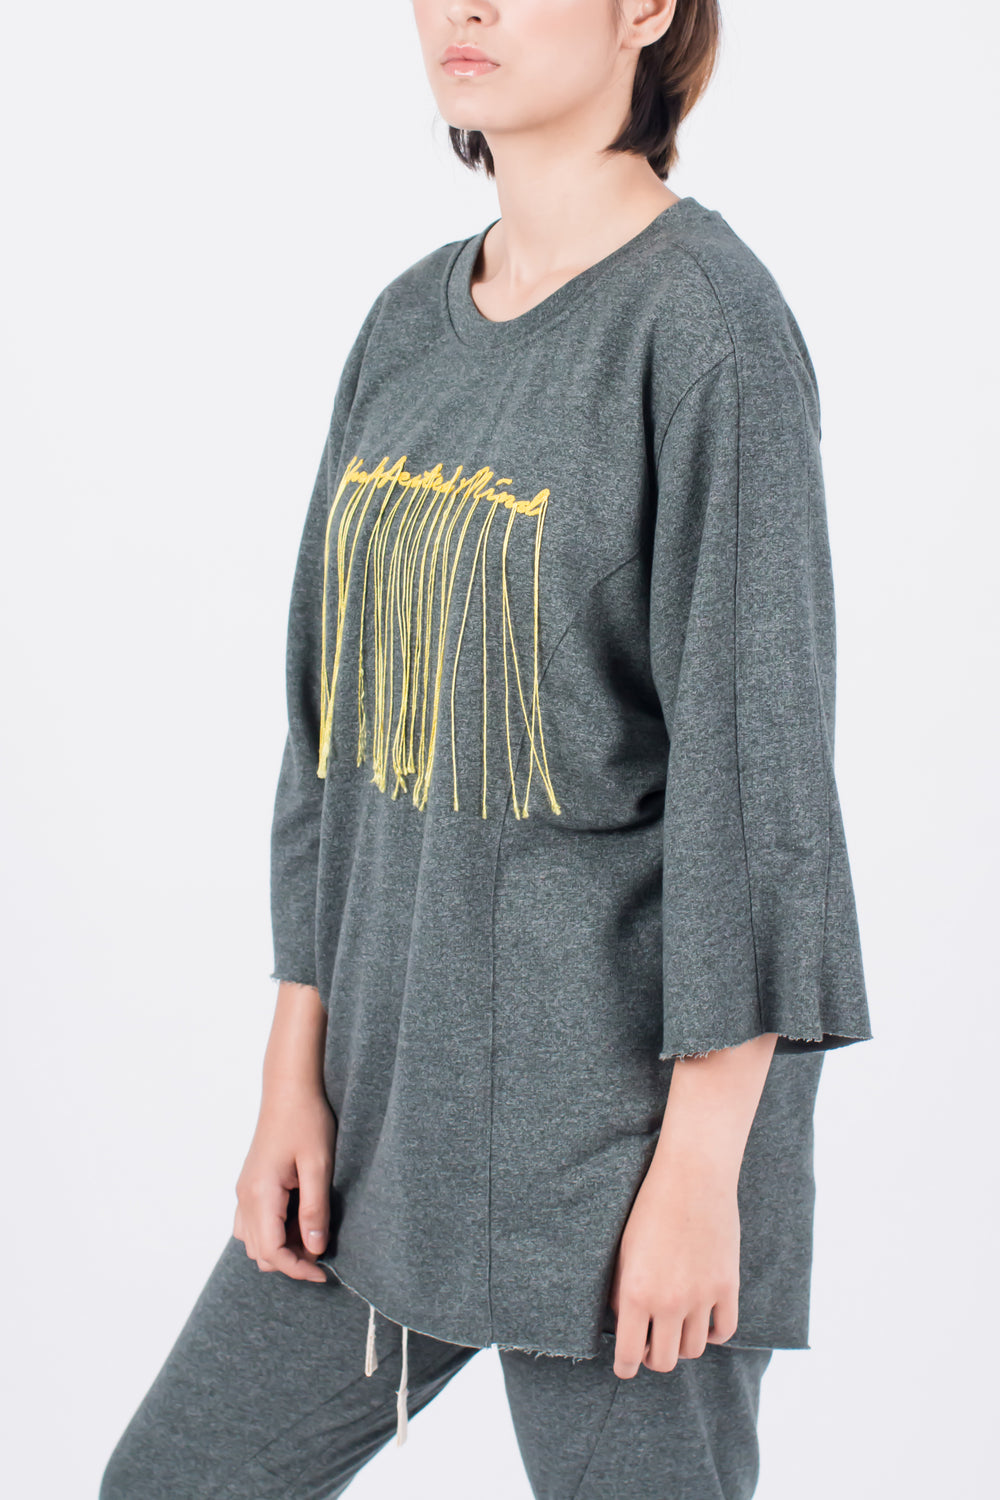 Muzca Undefeated Mind In Siro Yarn Sweatshirt Modest Loose Fitting Green Top with Long Sleeves and Front Stitching in 100% Cotton